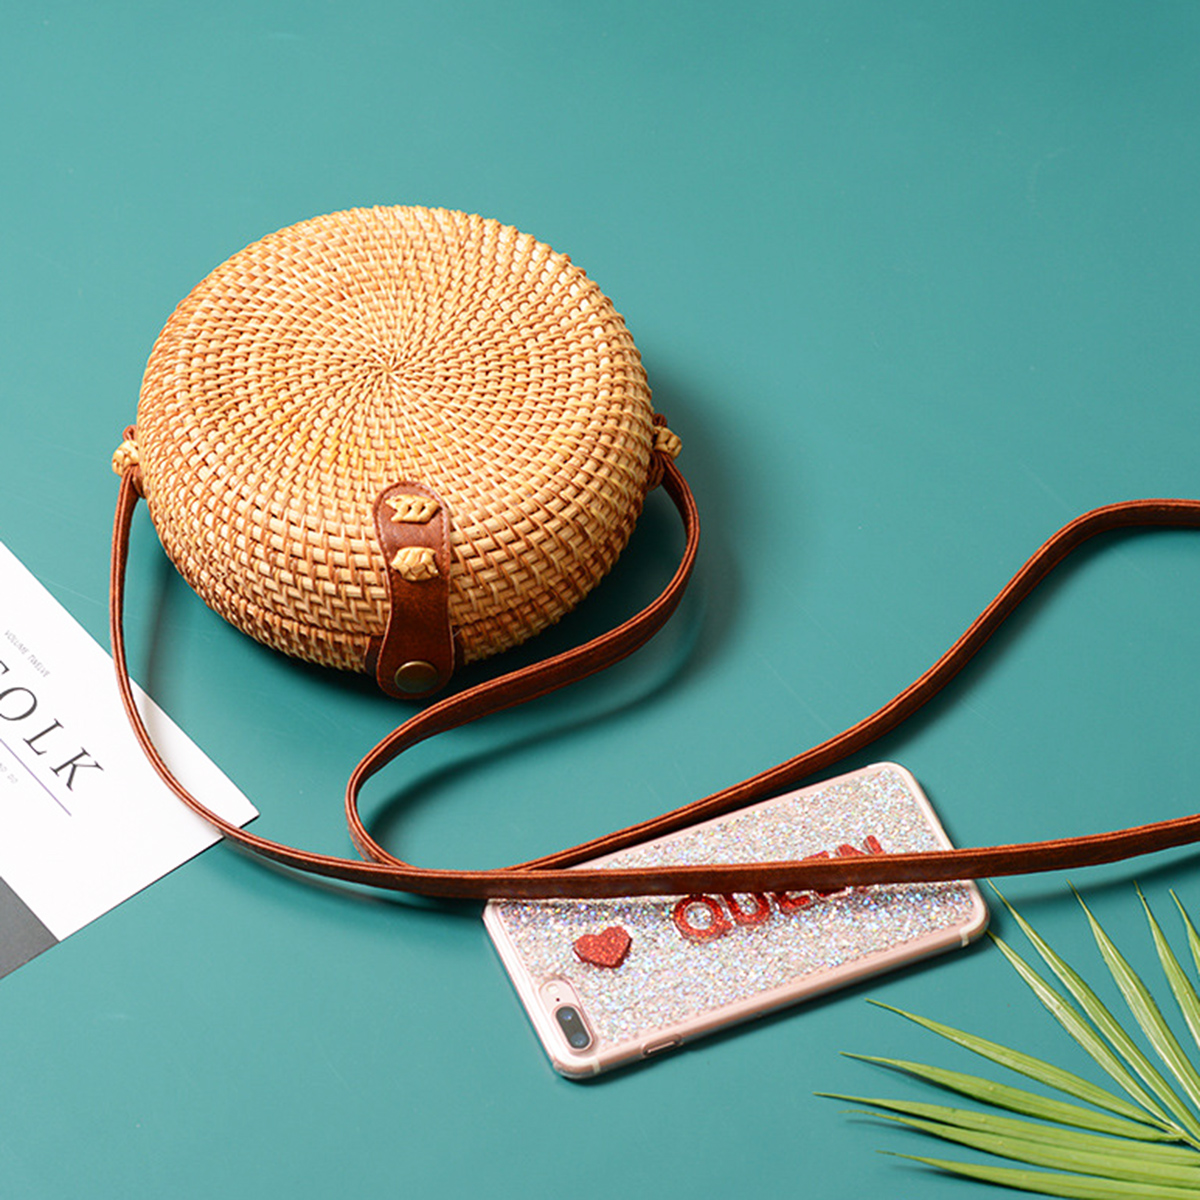 Women-039-s-Beach-Bag-Rattan-Straw-Handwoven-Round-Messenger-Crossbody-Handbag-Tote